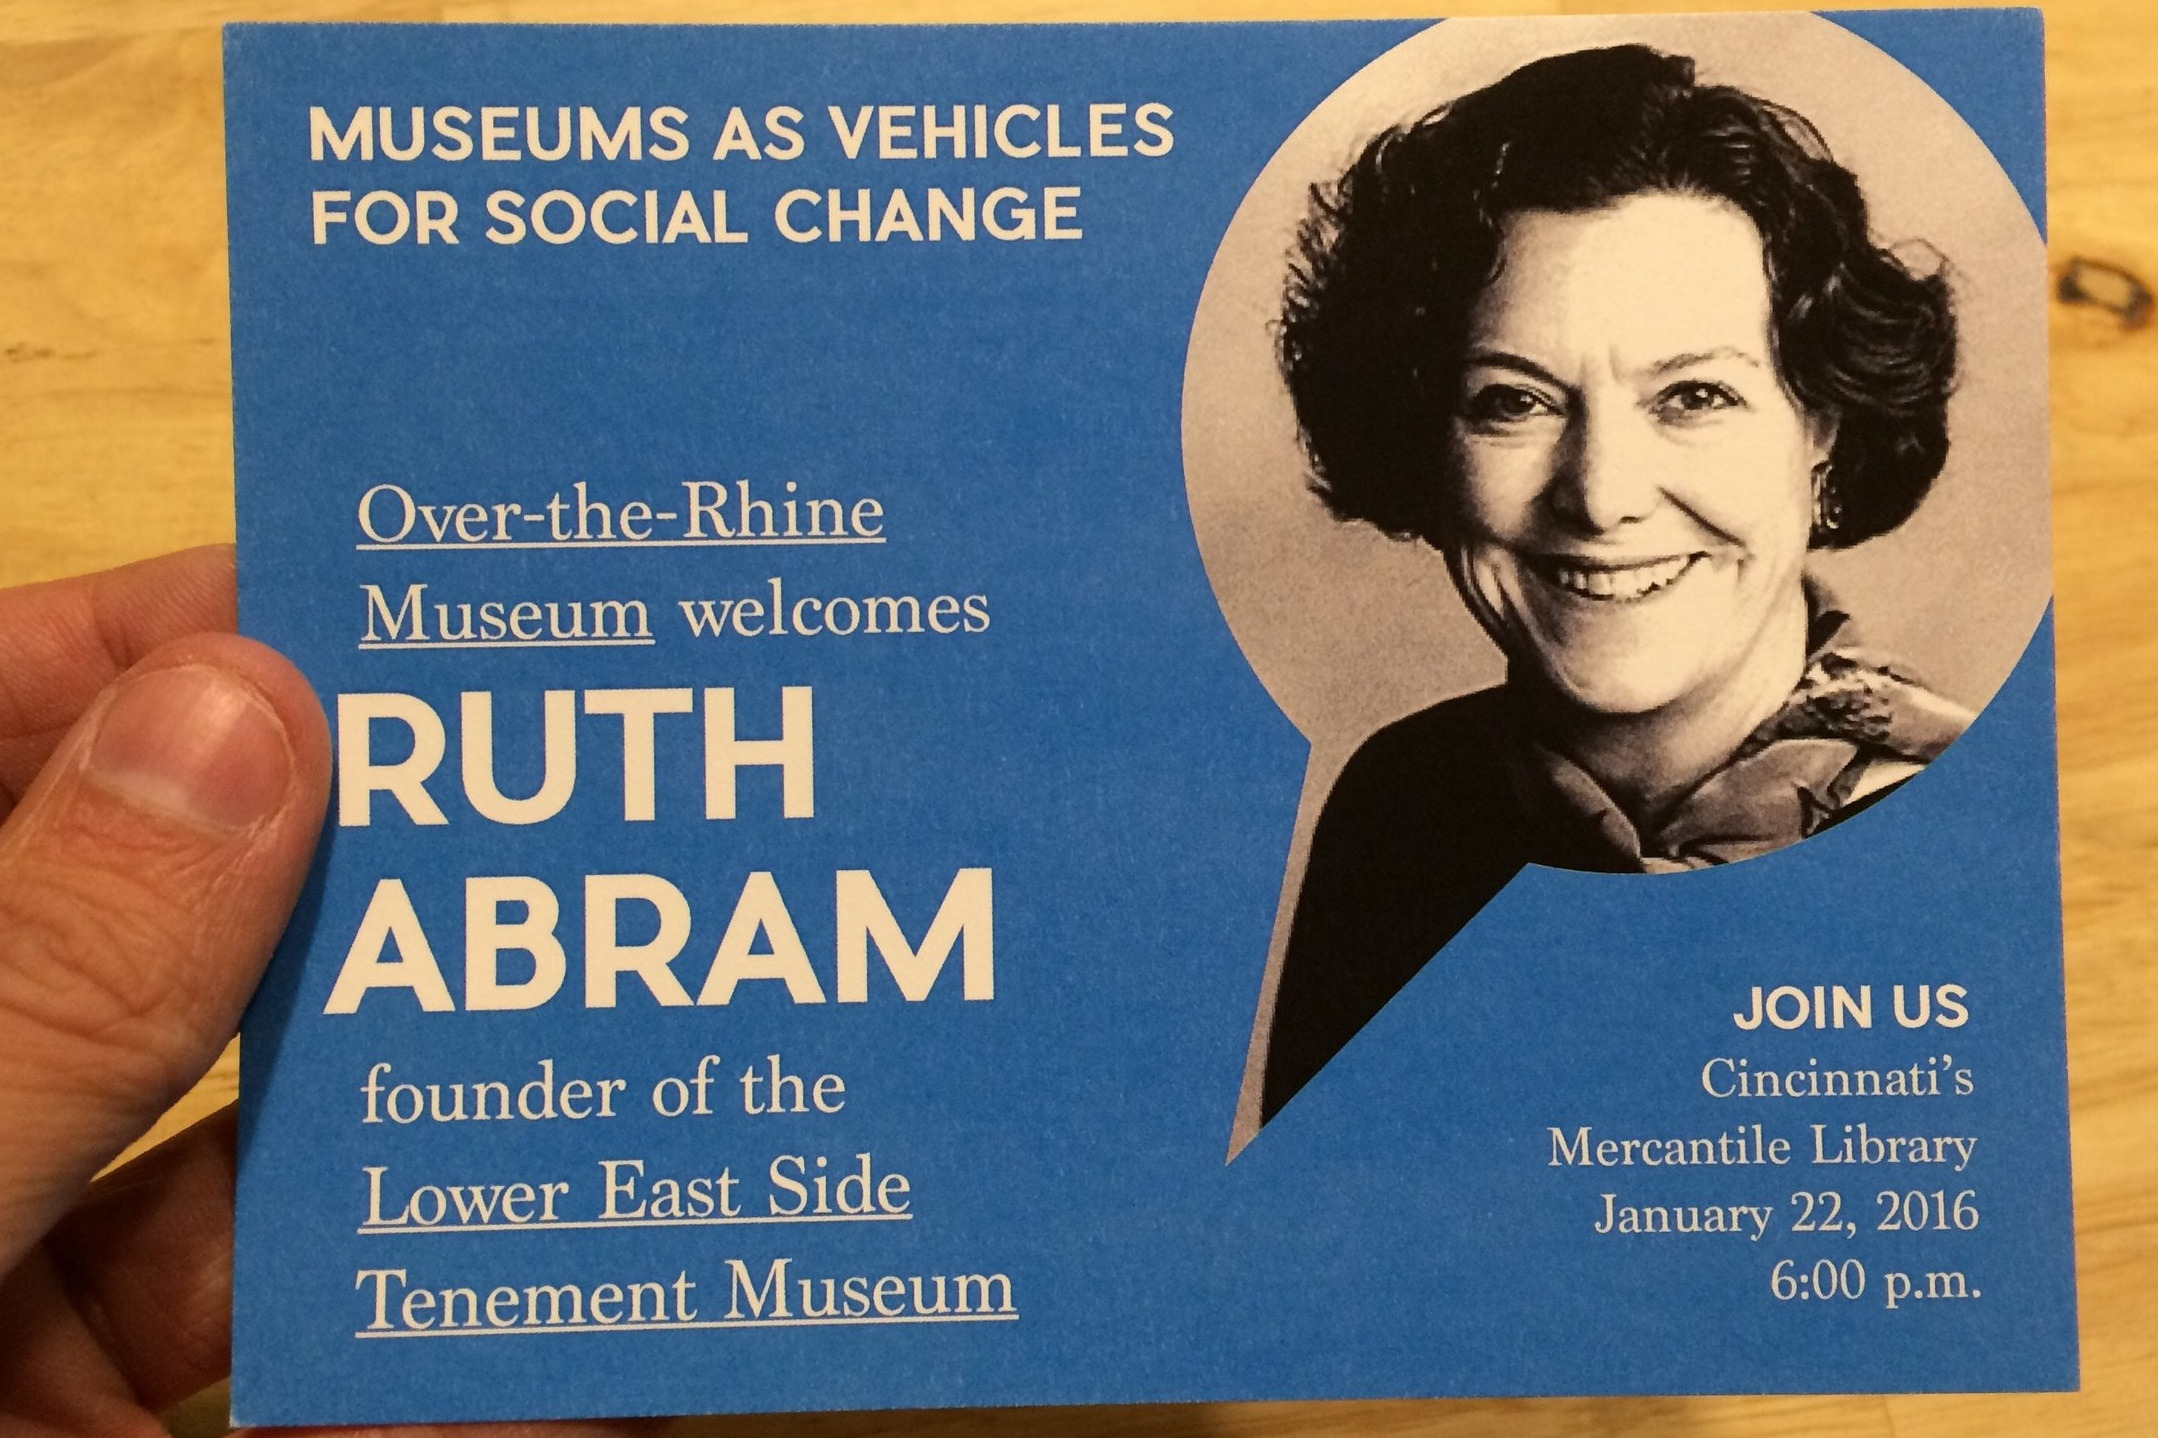 """Ruth J Abram Discusses Community Museums and Her Work in Historic Preservation"" - WVXU 